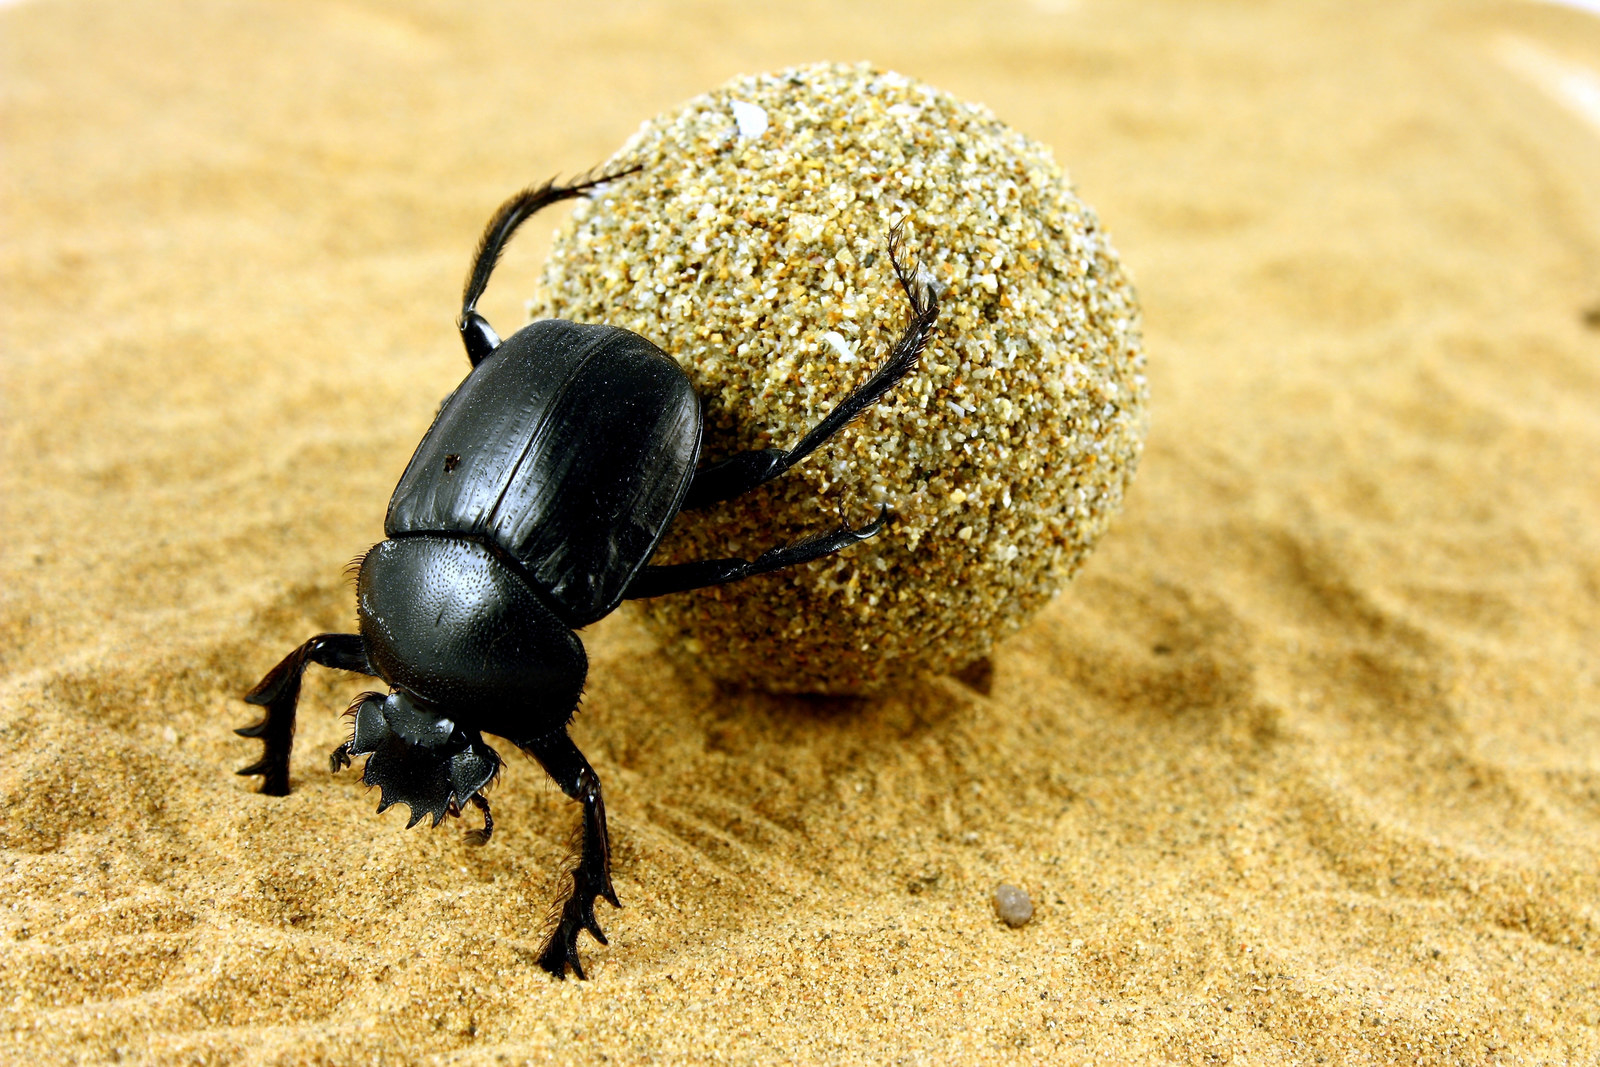 Dung beetles can roll their dung balls in a straight line when they can see the night sky, but not when it's overcast – leading scientists to conclude that they are using the stars, and the Milky Way, to navigate.